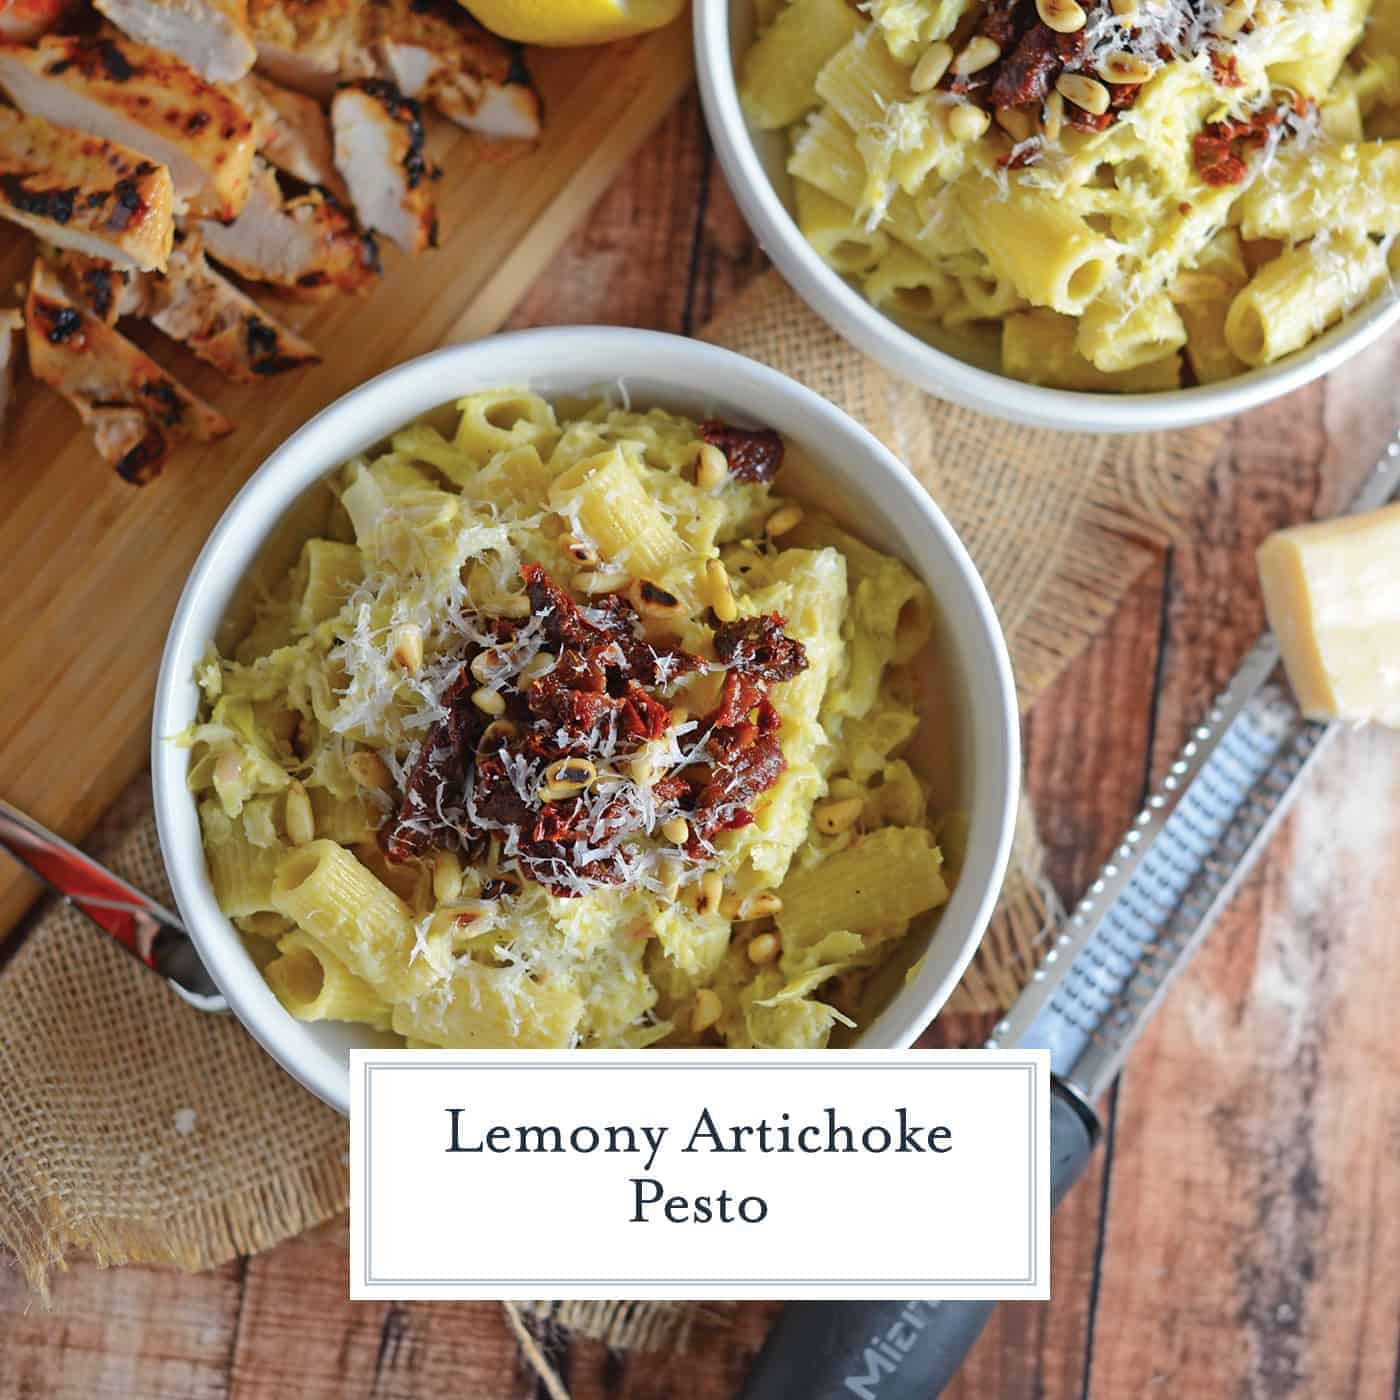 Lemony Artichoke Pesto is a fresh and punchy sauce perfect for summer meals and pasta. Takes only minutes to make, stores and freezes well and makes an excellent gift. Top with pine nuts, sun dried tomatoes and Parmesan Reggiano cheese. #homemadepestosauce #artichokes www.savoryexperiments.com